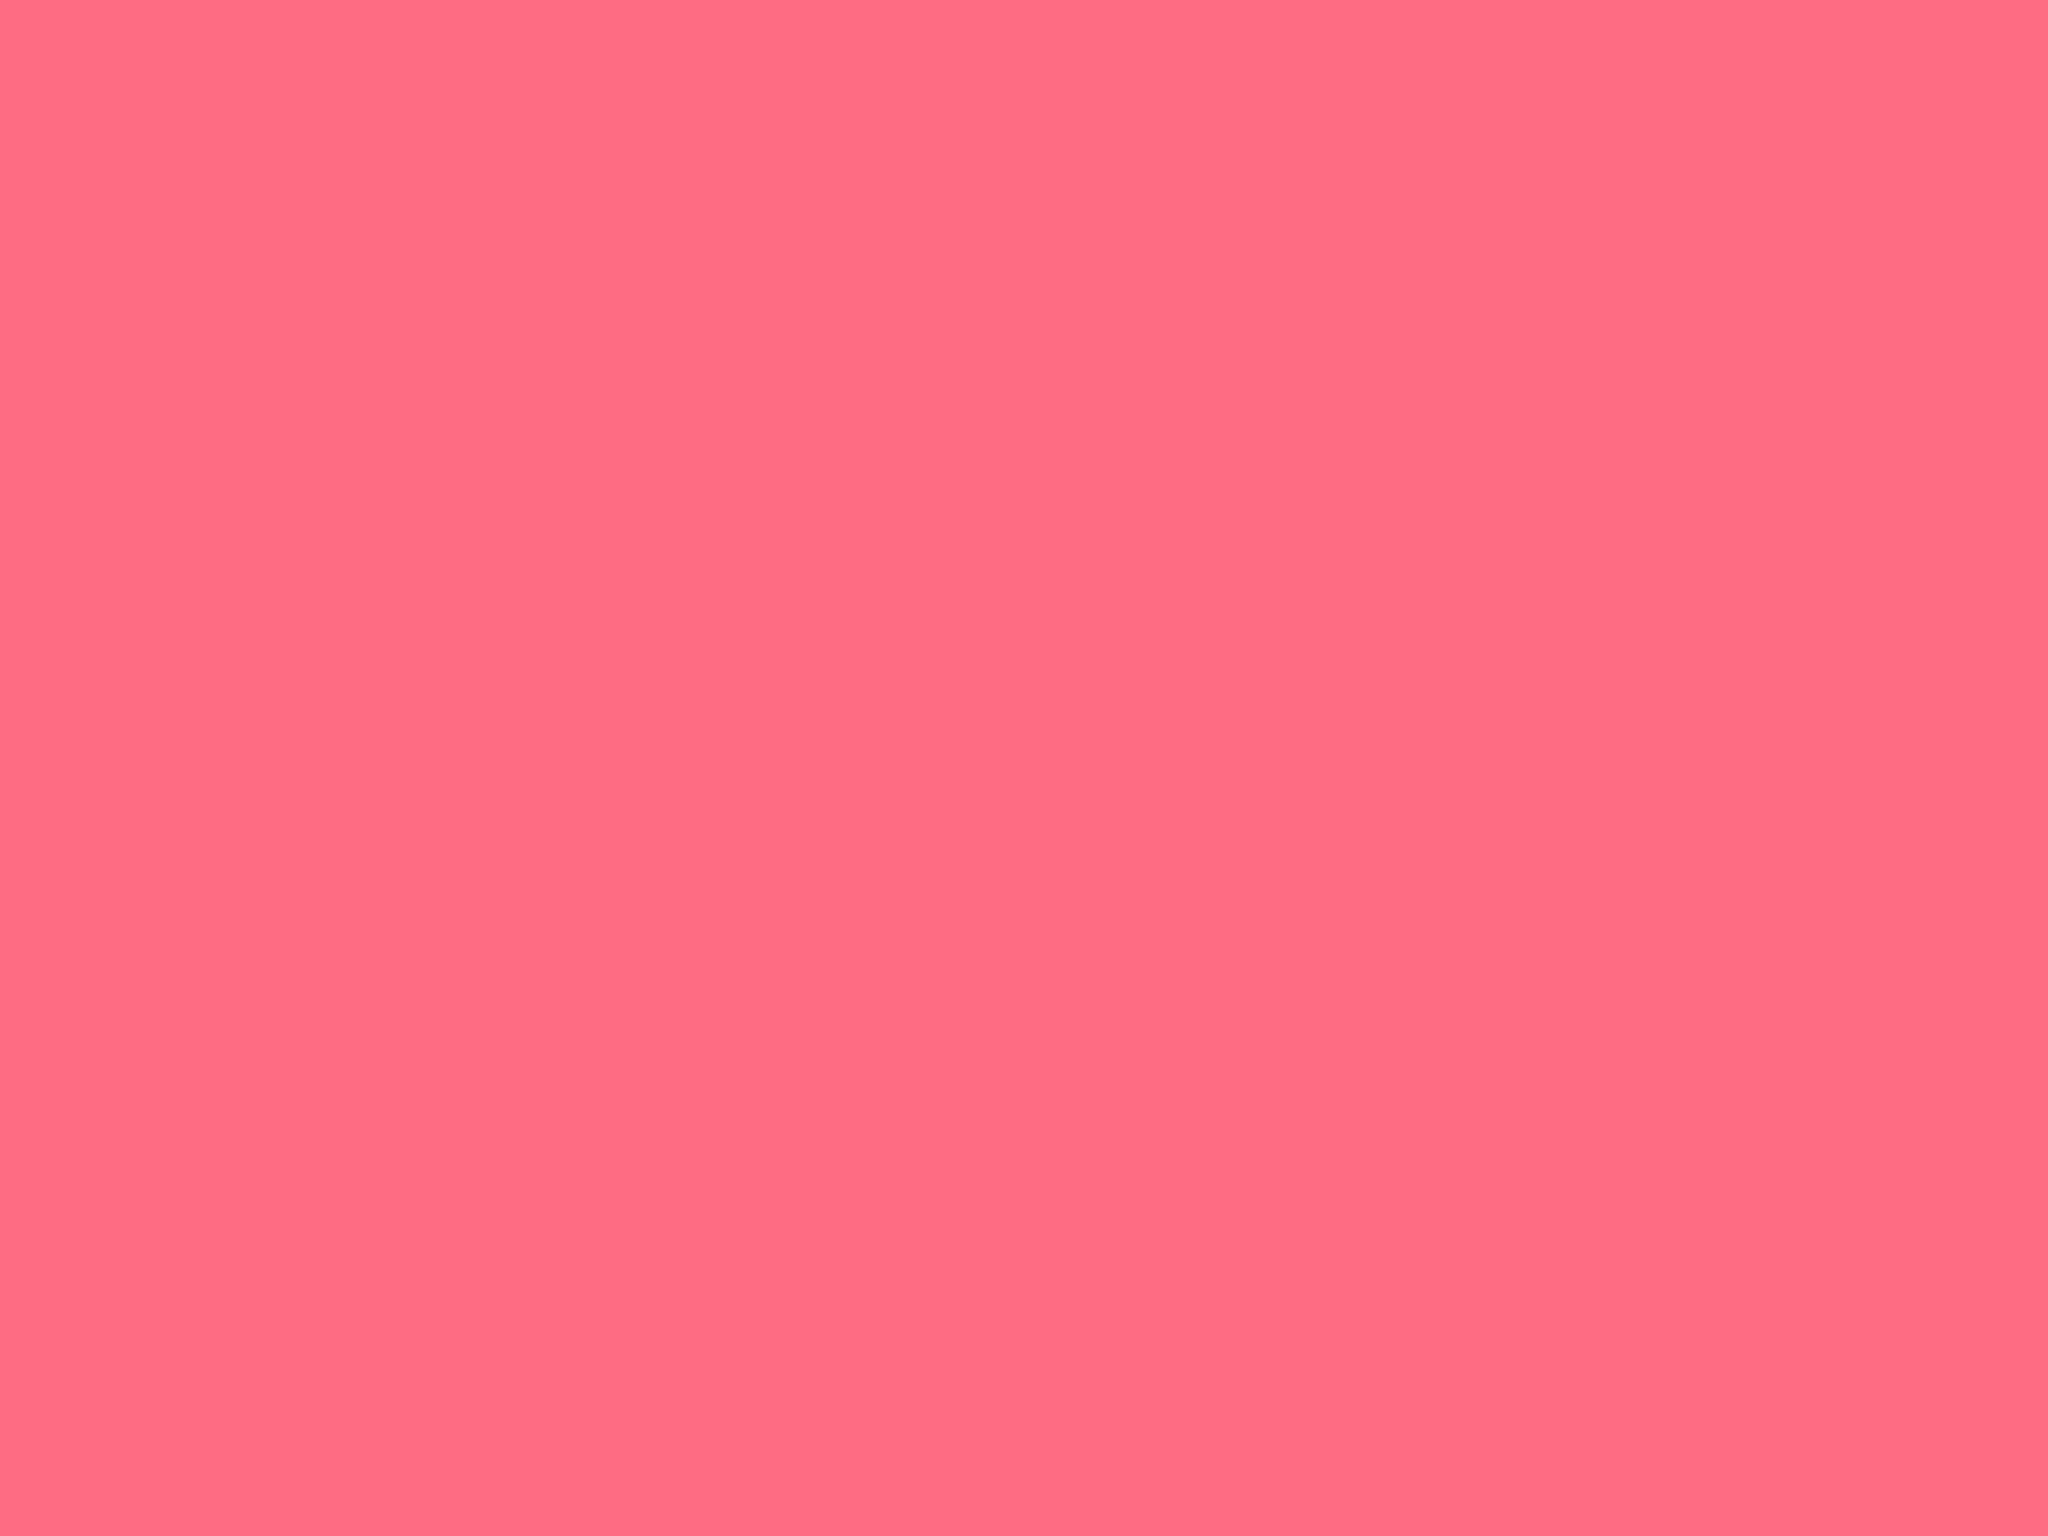 2048x1536 Wild Watermelon Solid Color Background